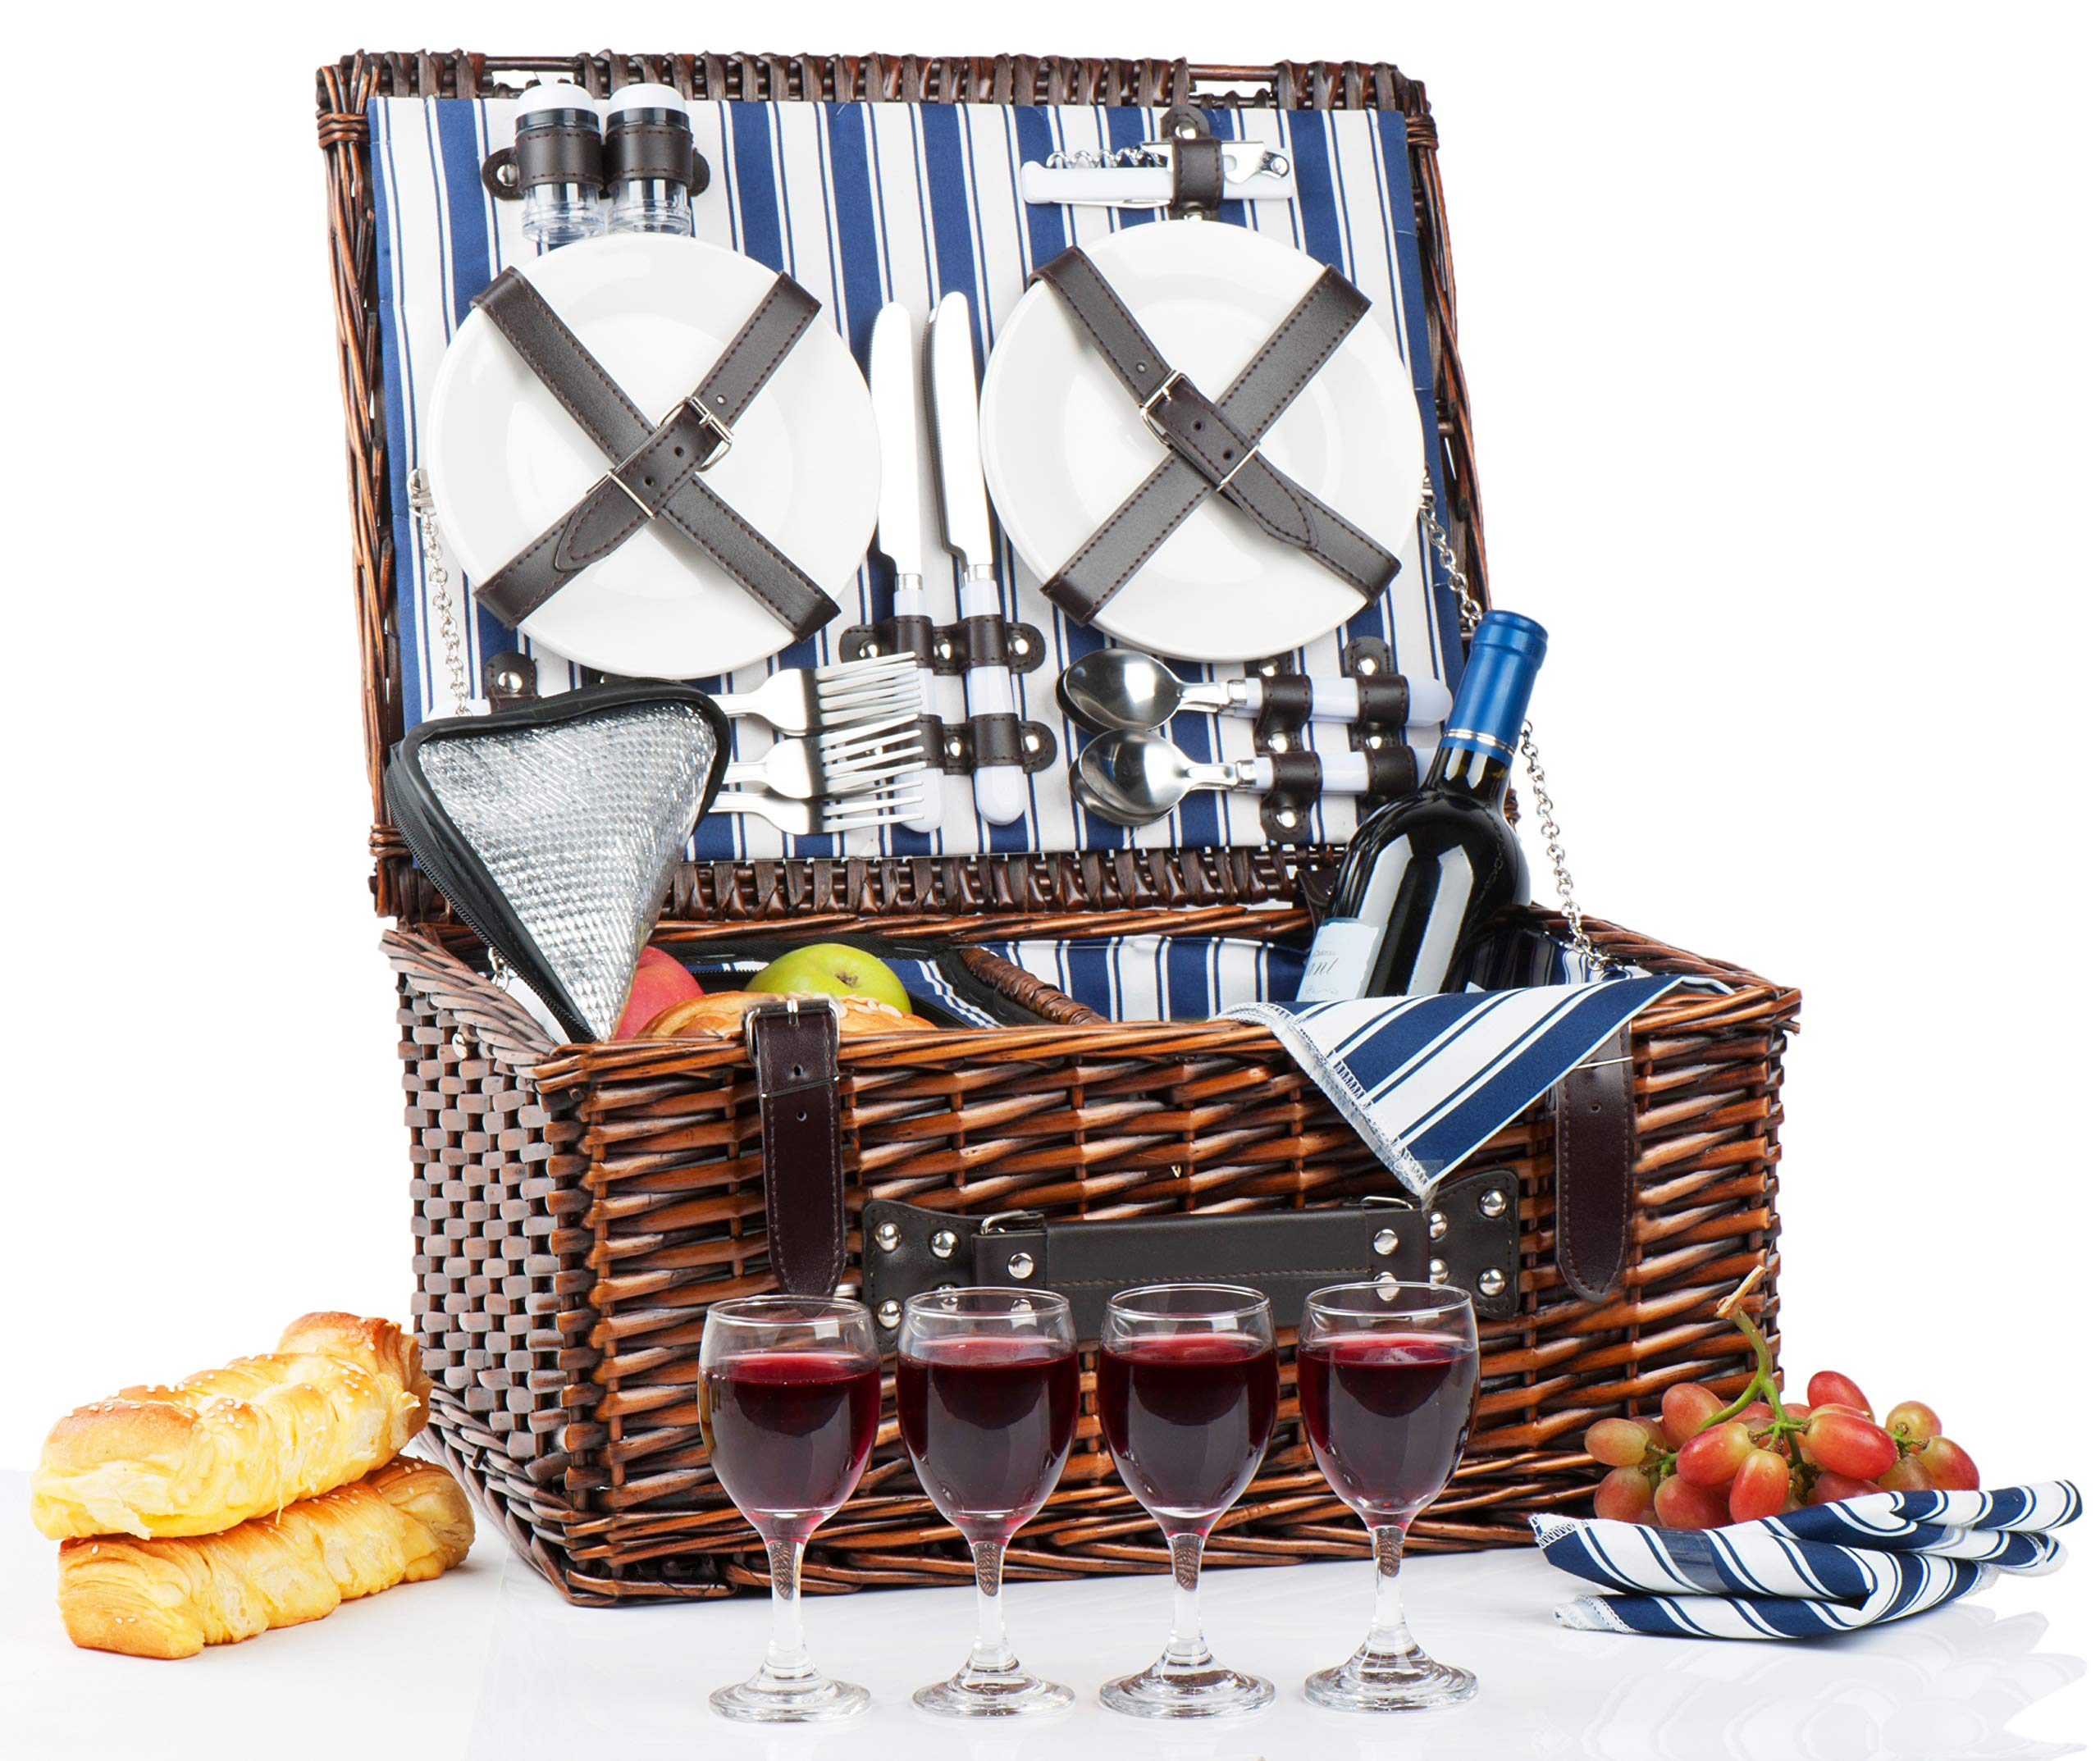 Picnic Basket Set for 4 Person   Insulated Picnic Hamper Set   Picnic Table Set   Picnic Plates   Picnic Supplies   Summer Picnic Kit   Picnic Utensils Cutlery Flatware by CALIFORNIA PICNIC